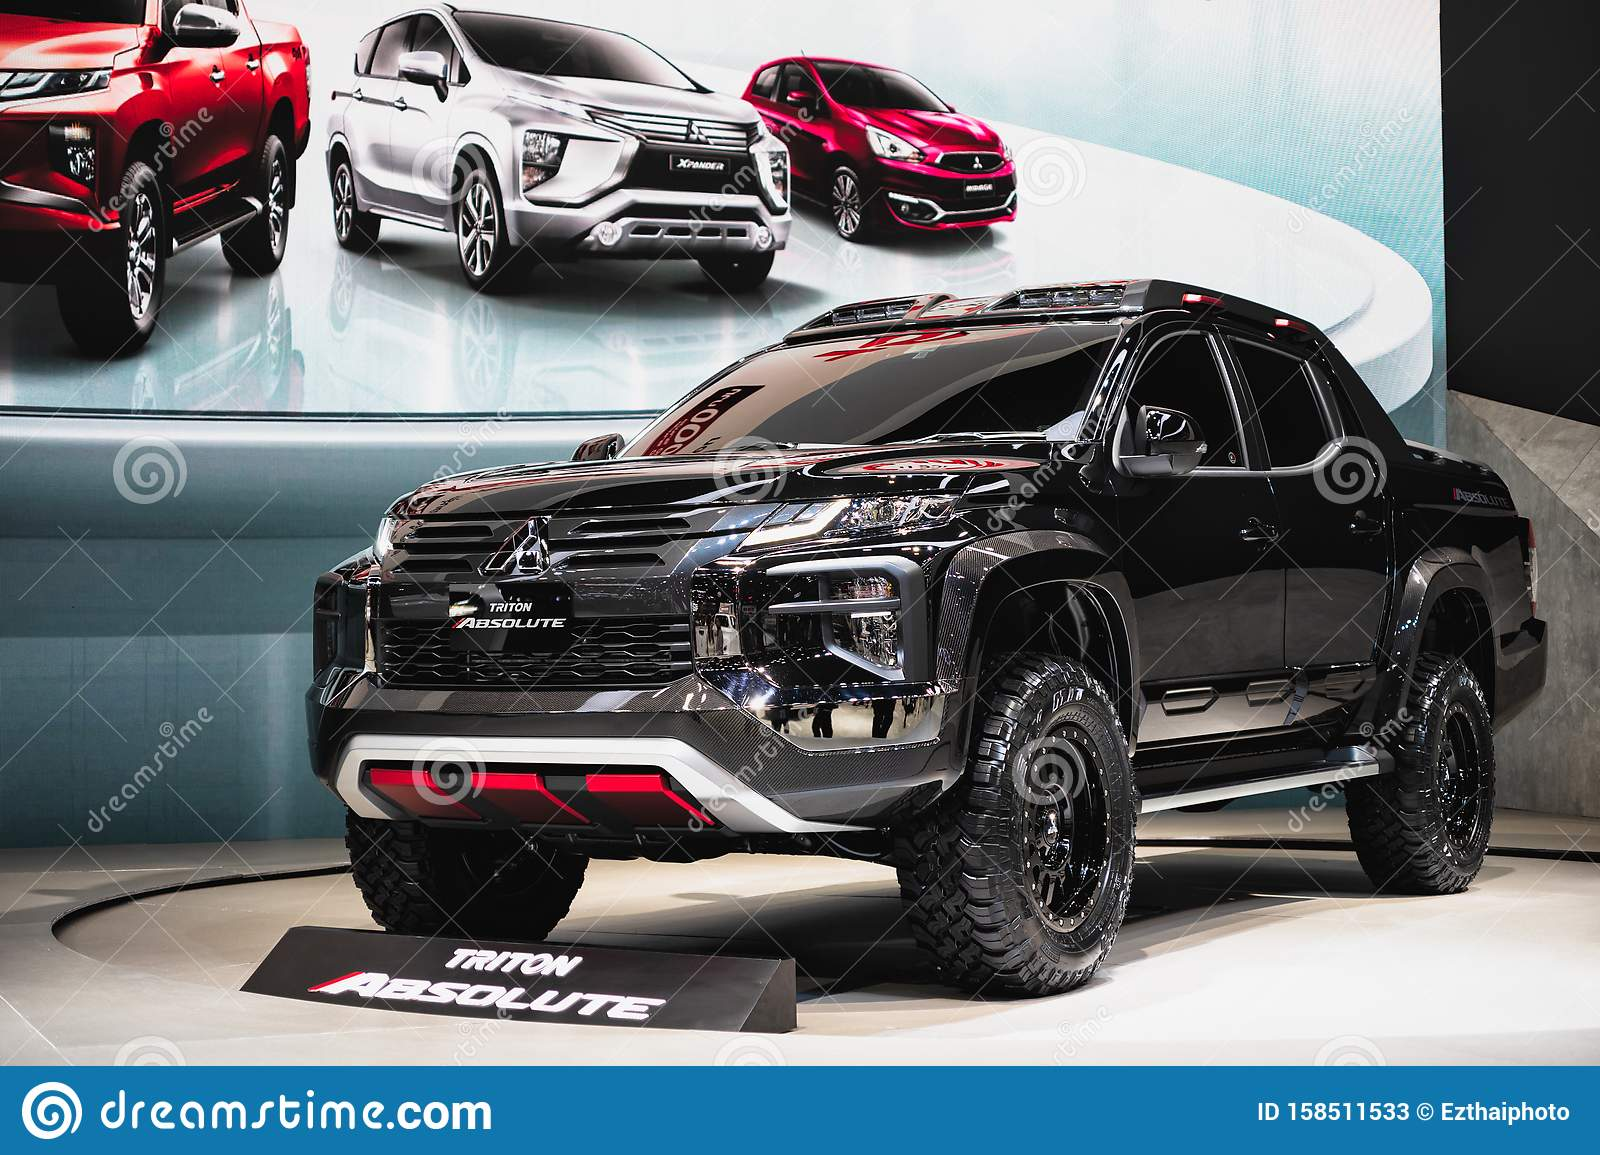 Bangkok Thailand September 14 2019 Mitsubishi New Triton Absolute Presented In Car Exhibition In Thailand Editorial Stock Photo Image Of Commercial Eevolution 158511533